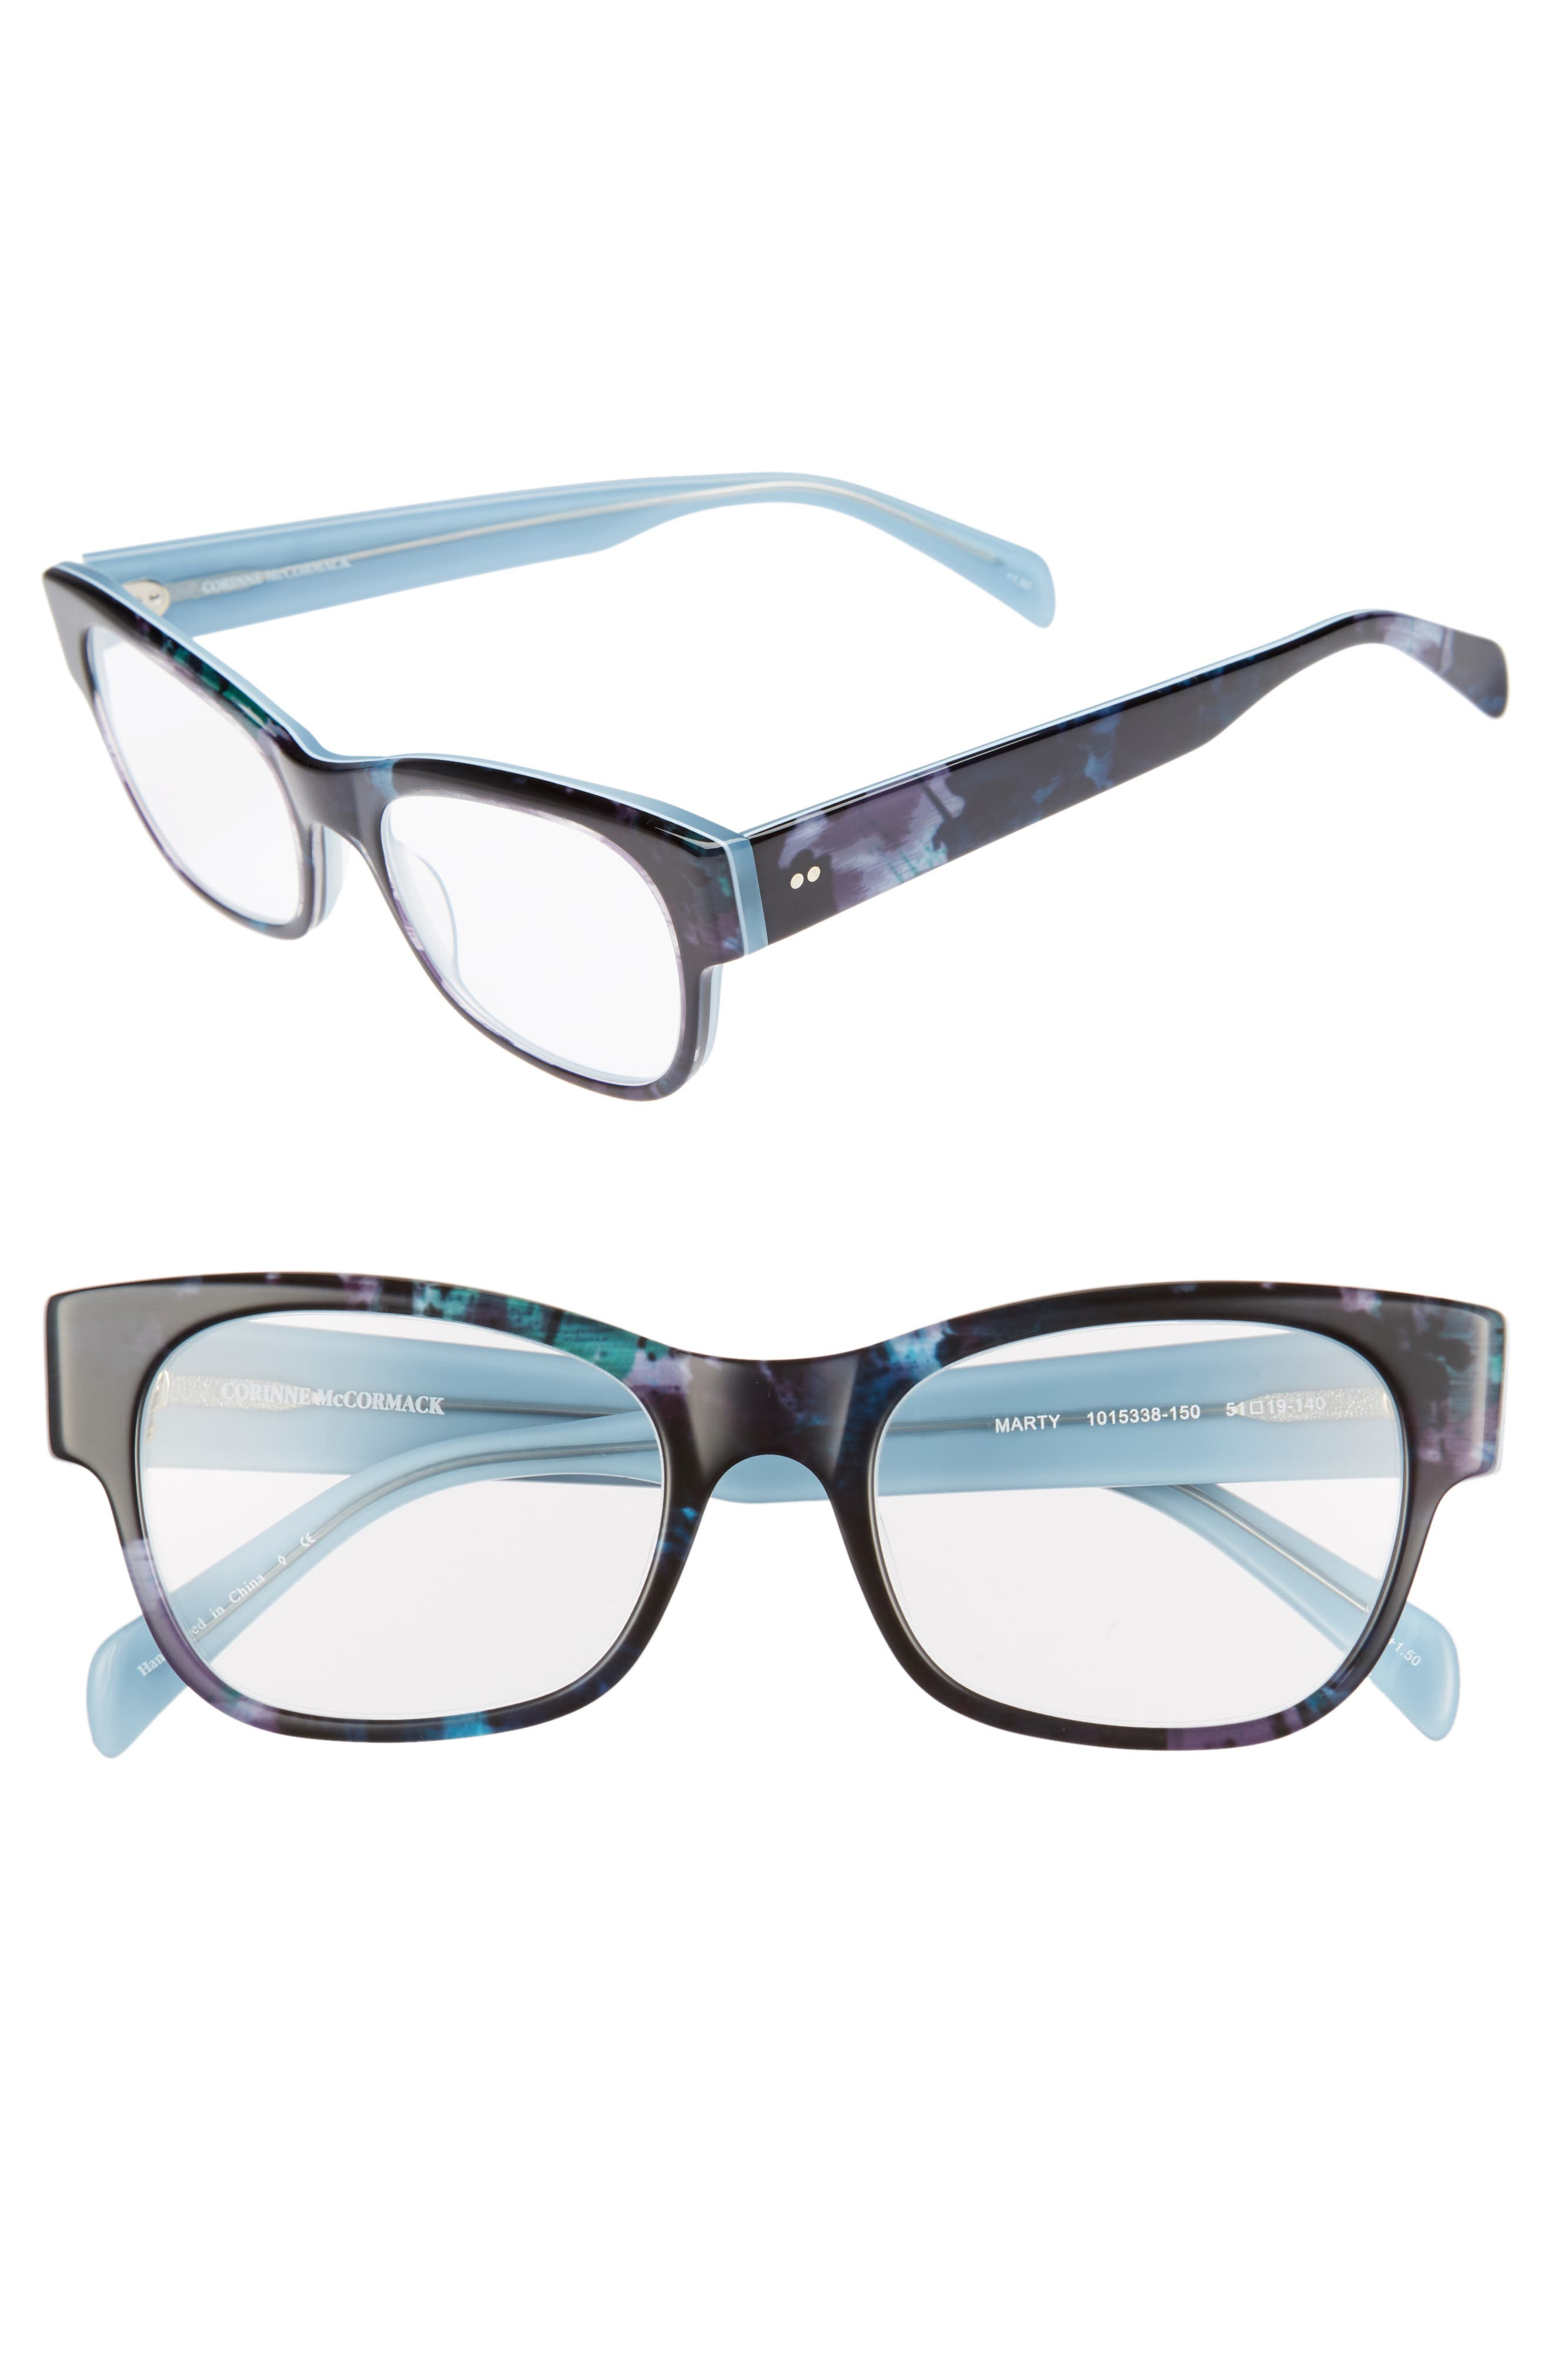 Alternate Image 1 Selected - Corinne McCormack Marty 51mm Reading Glasses